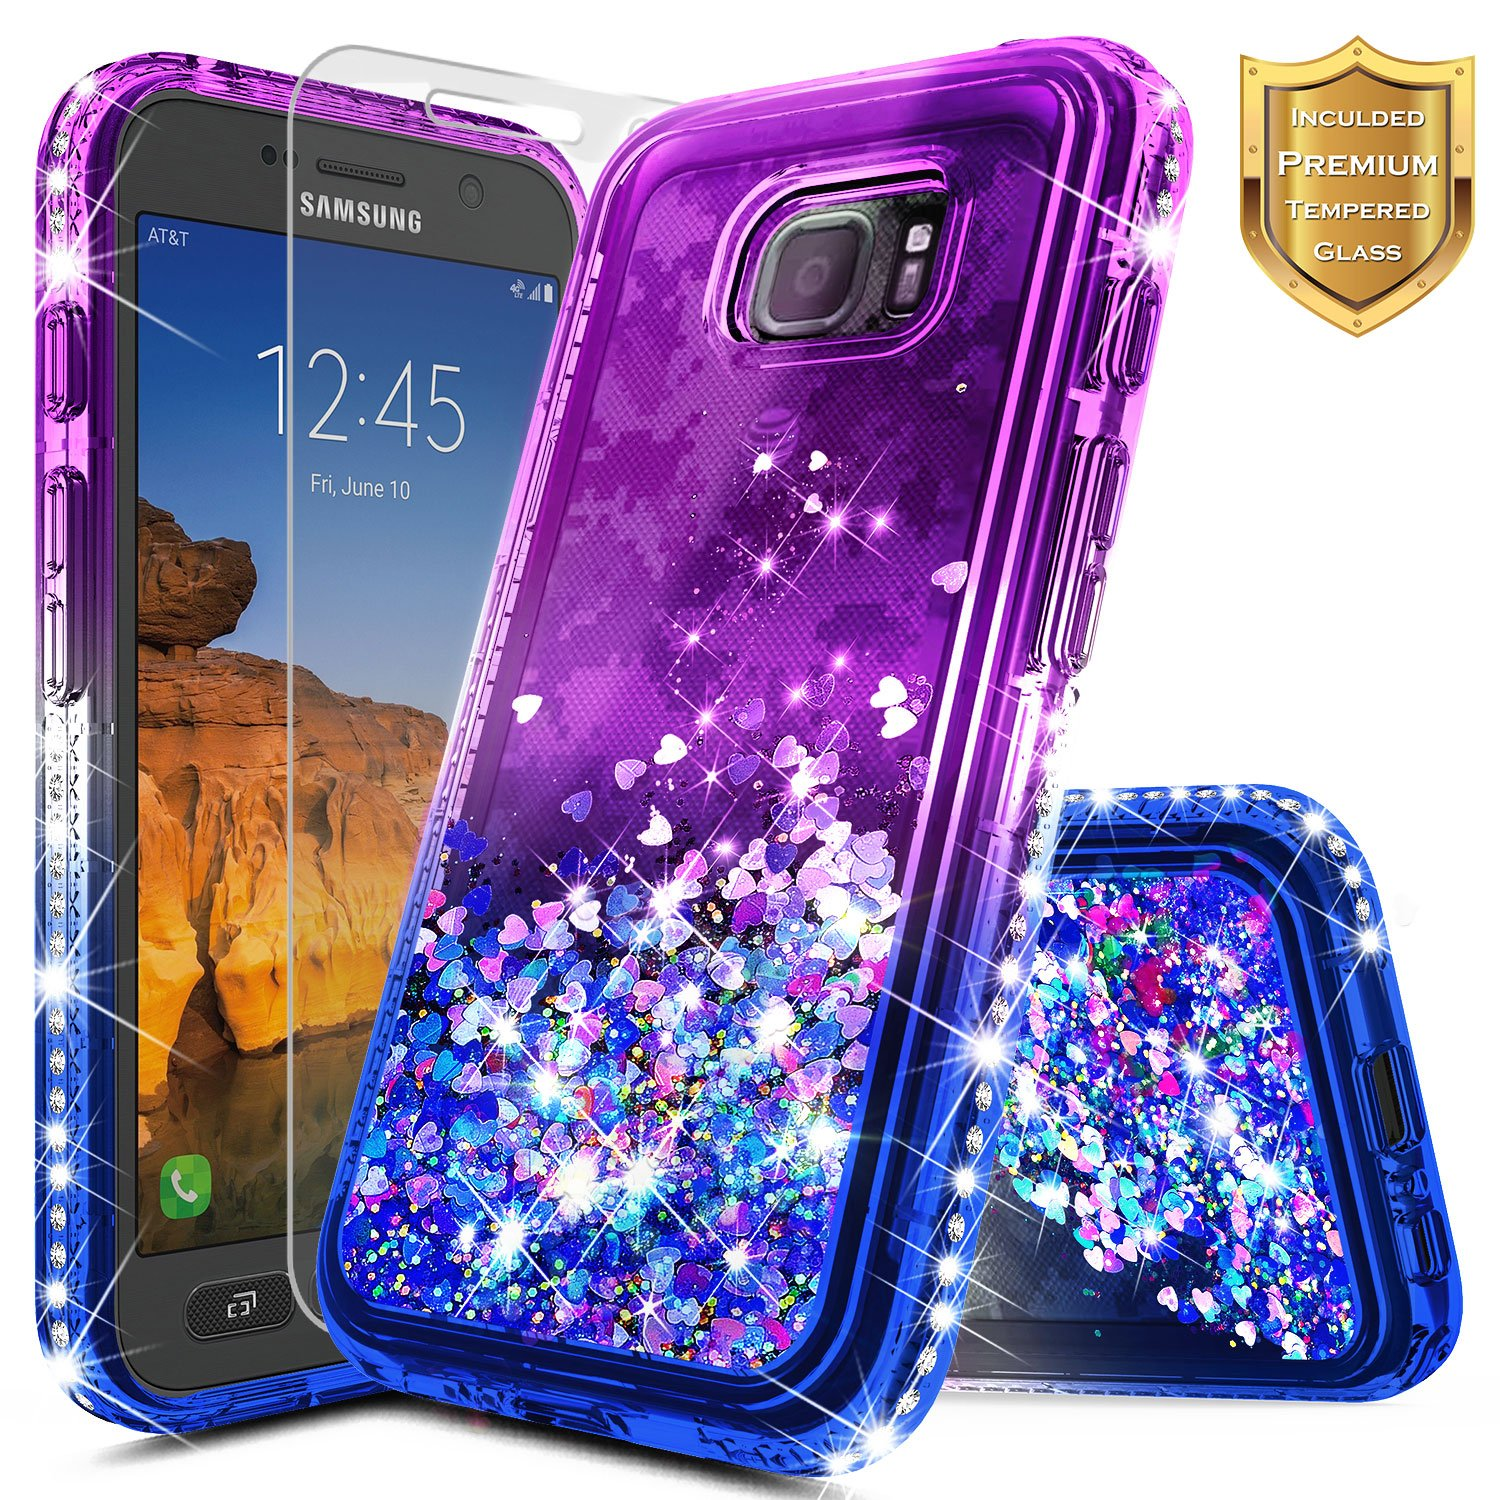 Galaxy S7 Active Case with [Tempered Glass Screen Protector], NageBee Glitter Liquid Quicksand Flowing Sparkle Shiny Bling Diamond Clear Cute Case For Samsung Galaxy S7 Active [SM-G891A] -Purple/Blue